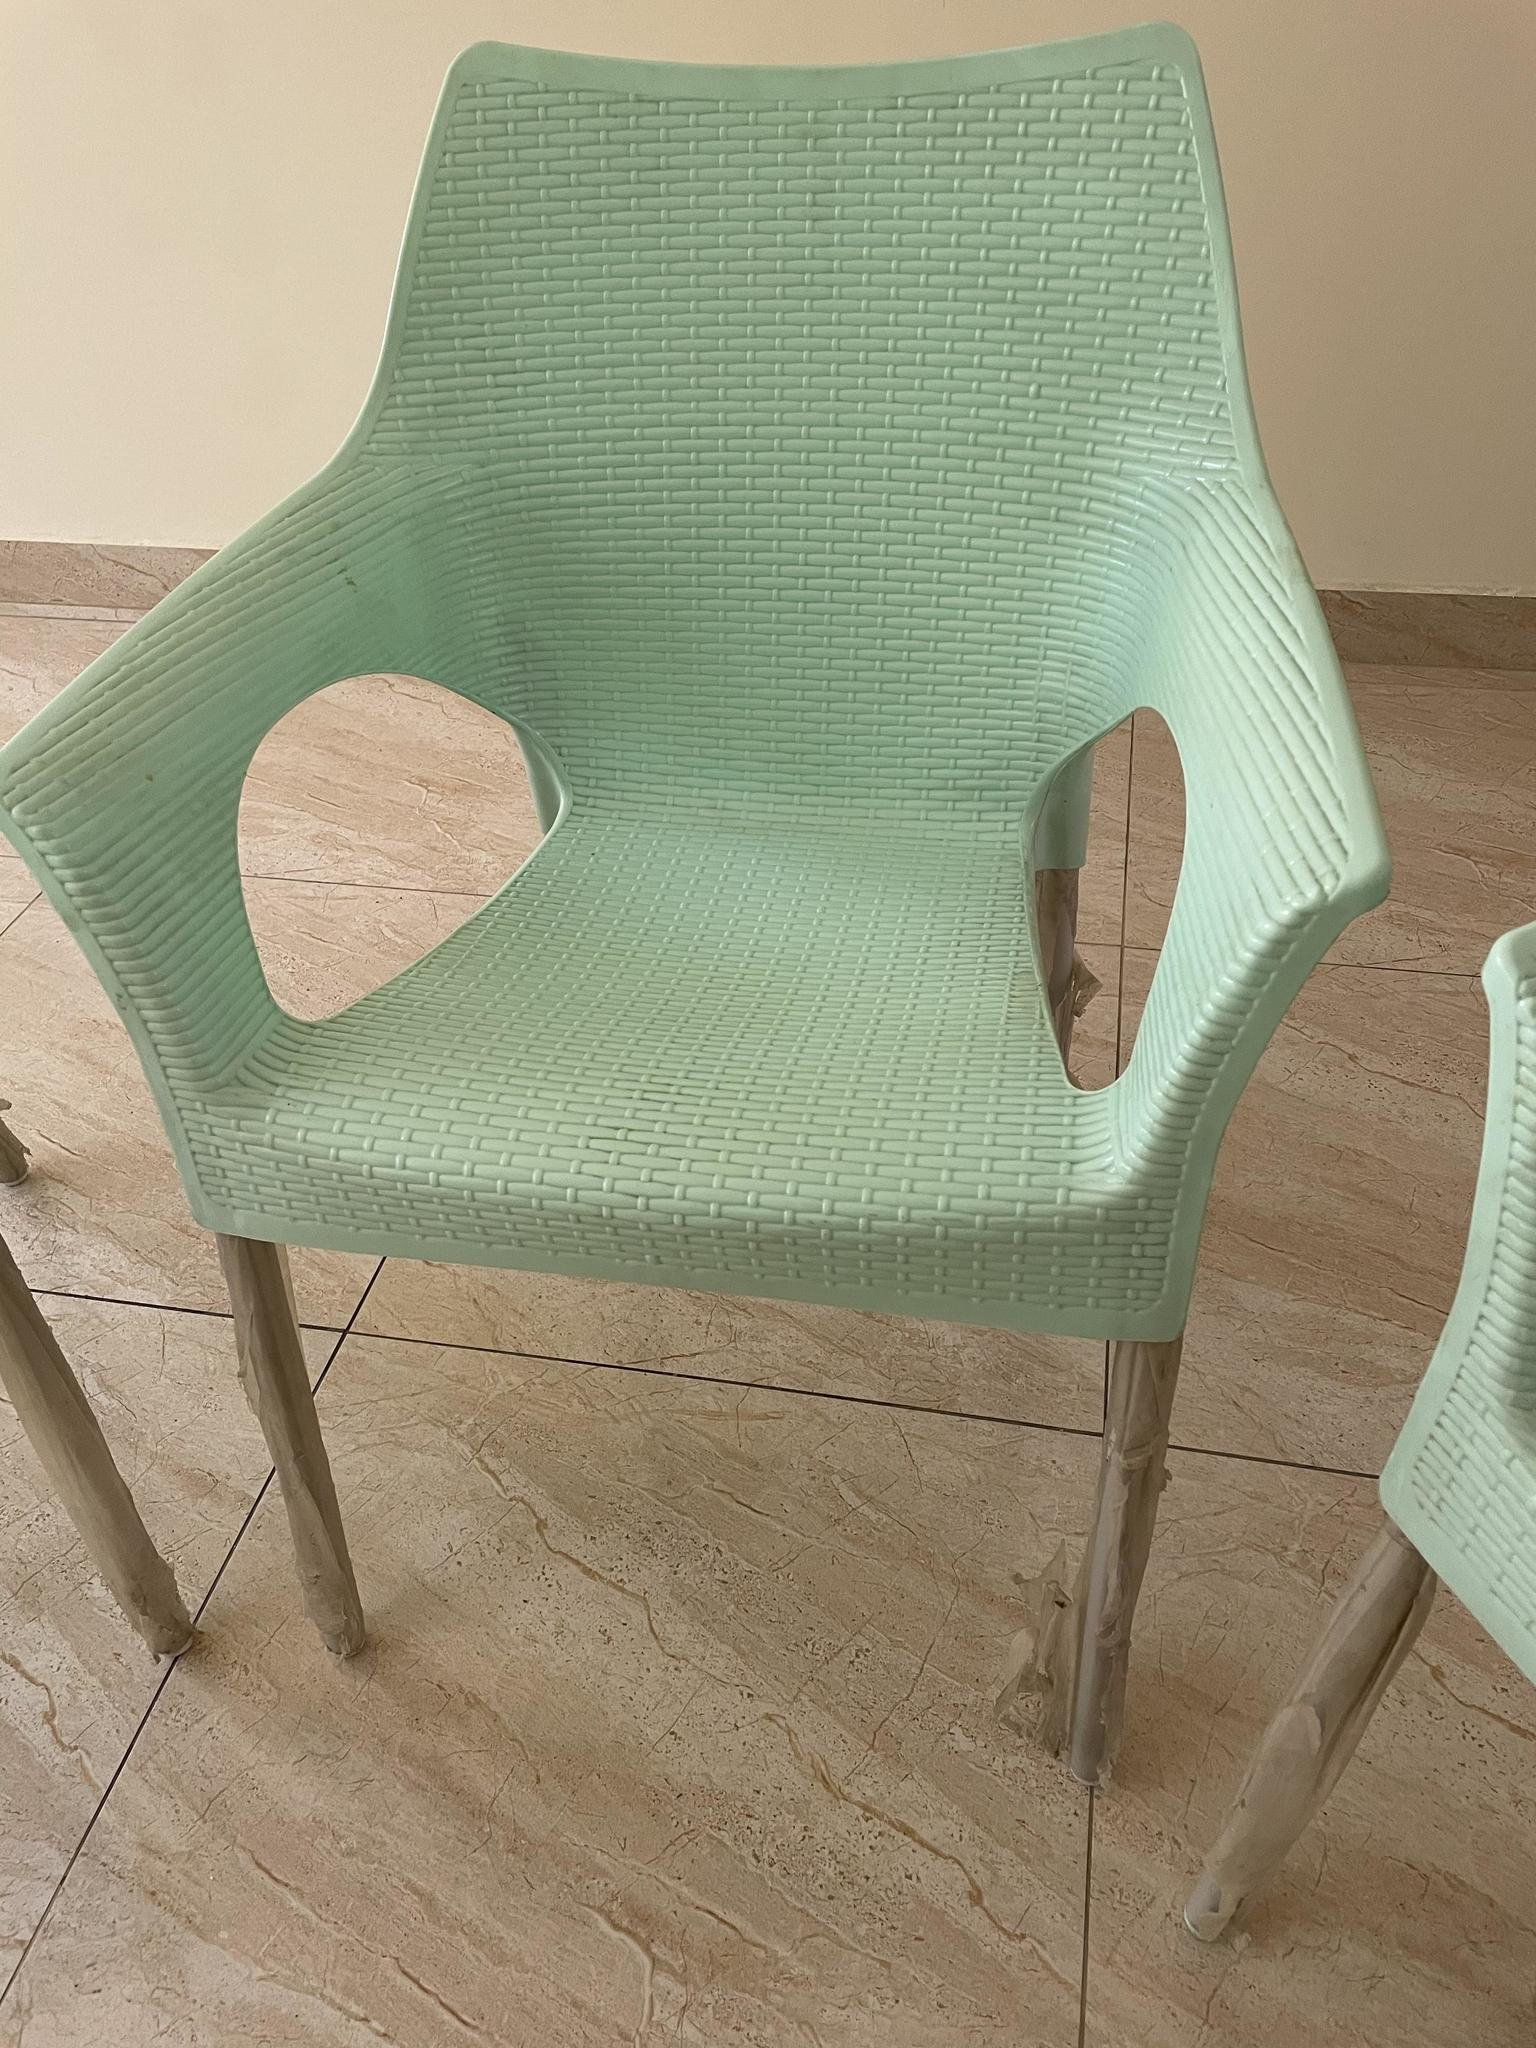 Table + 3 chairs for sale